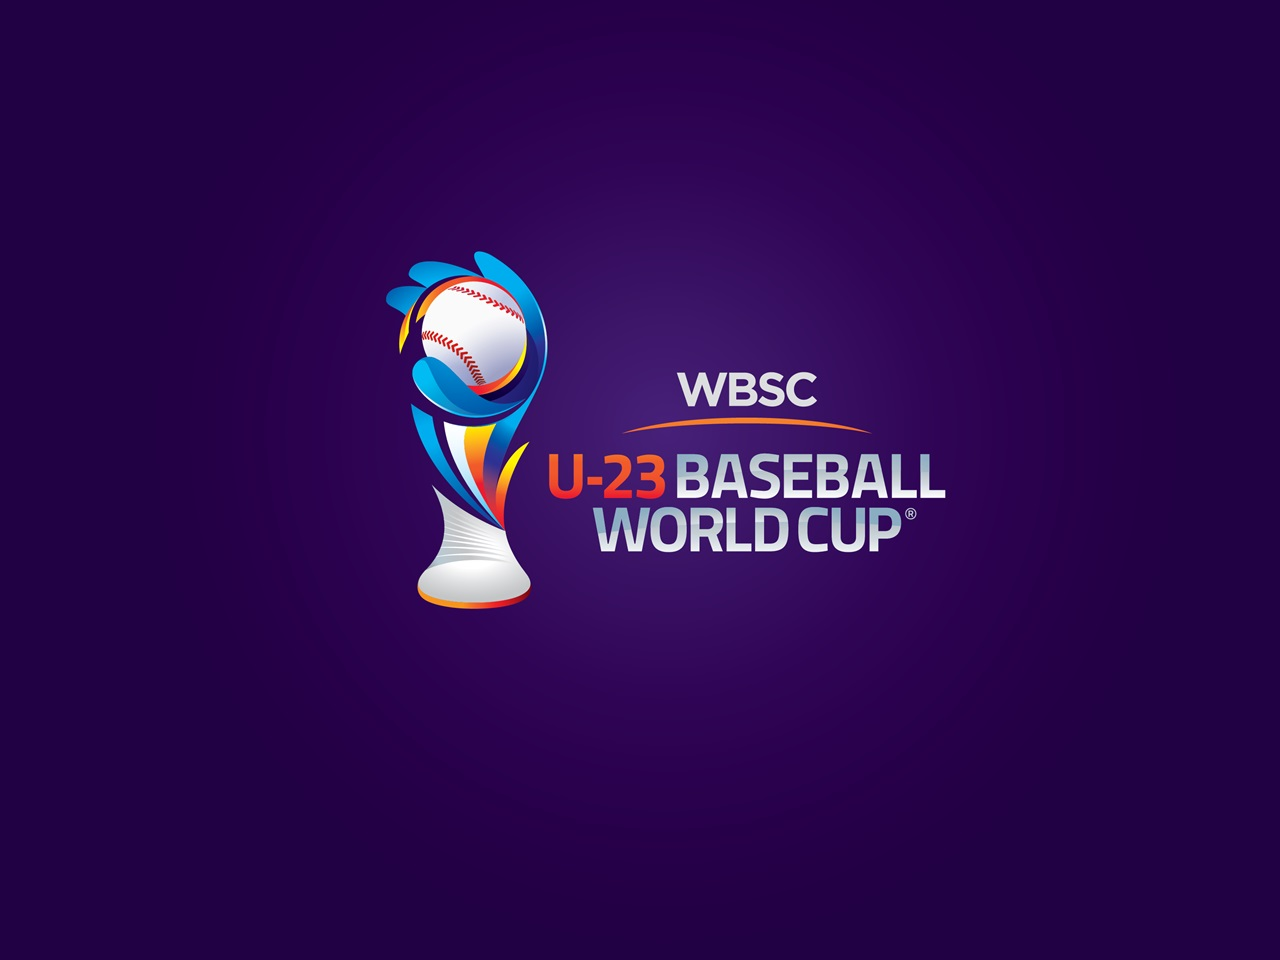 WBSC unveils nations, Logo for inaugural U-23 Baseball World Cup 2016 in Monterrey, Mexico